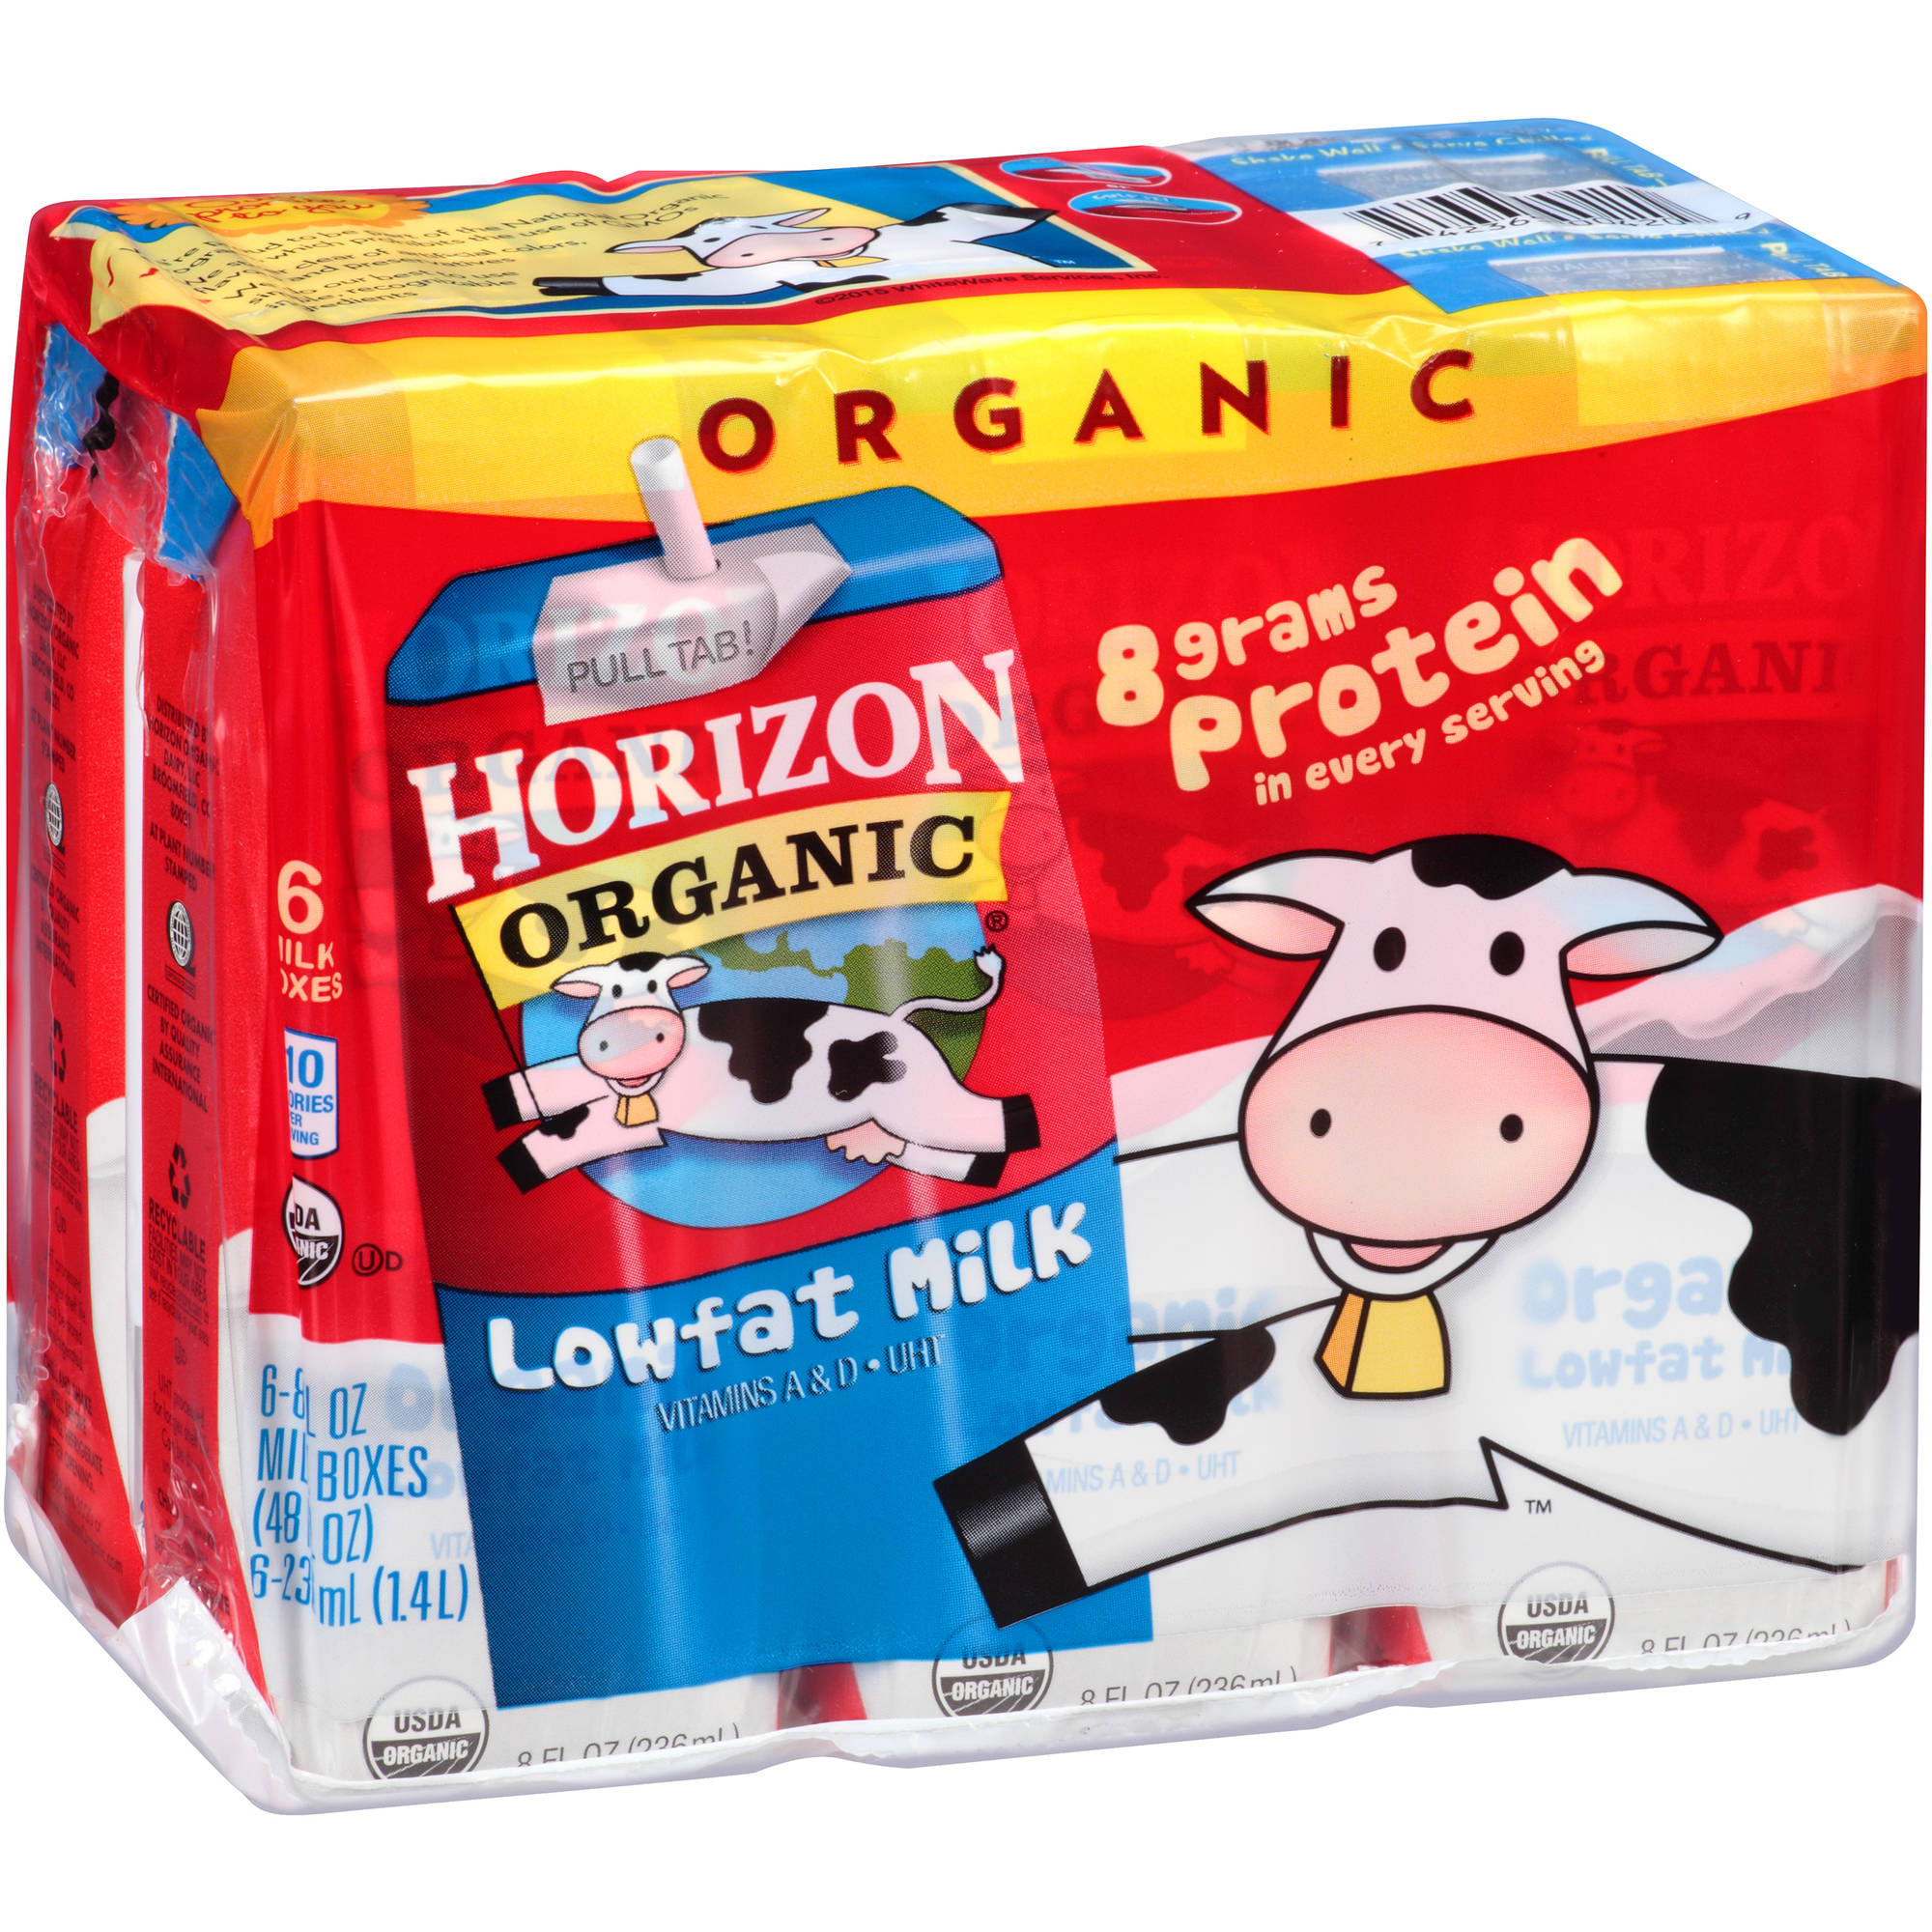 Horizon Organic Lowfat Milk, 8 fl oz, 6 count